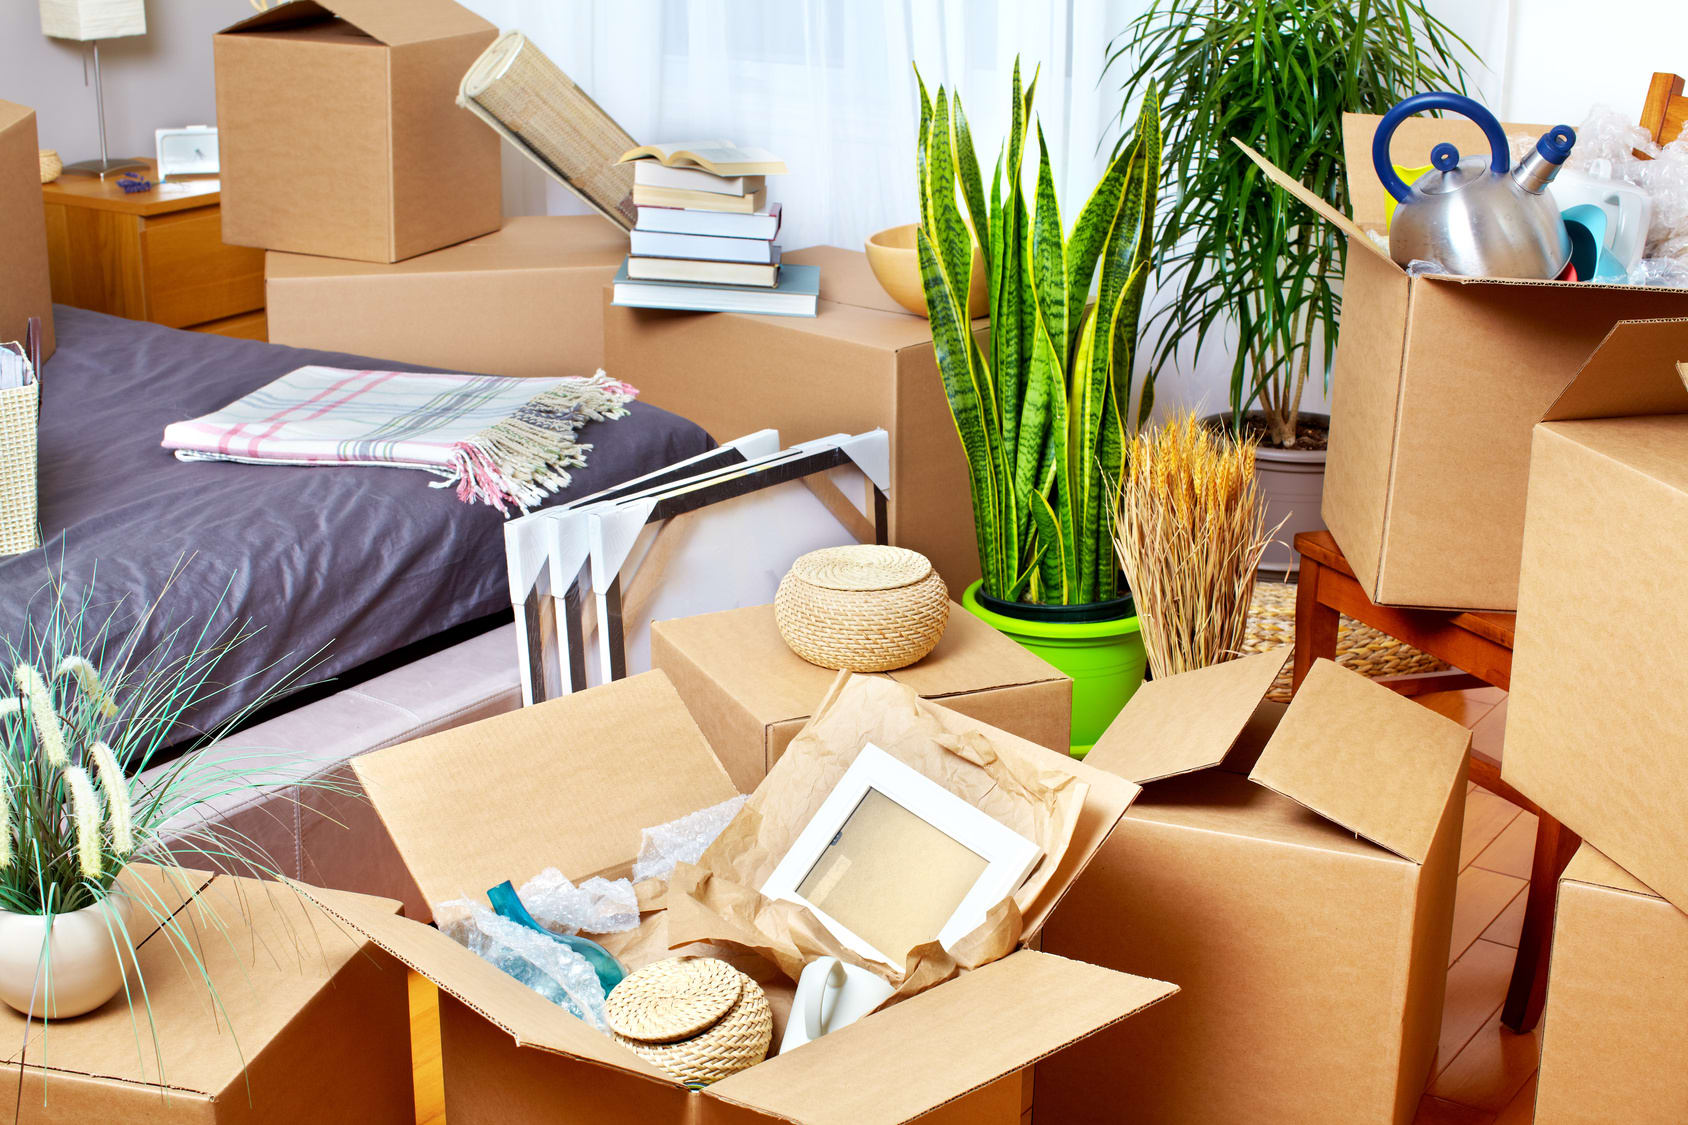 Avoid Stress With These Top 5 Apps For Moving - Jake's Moving and Storage